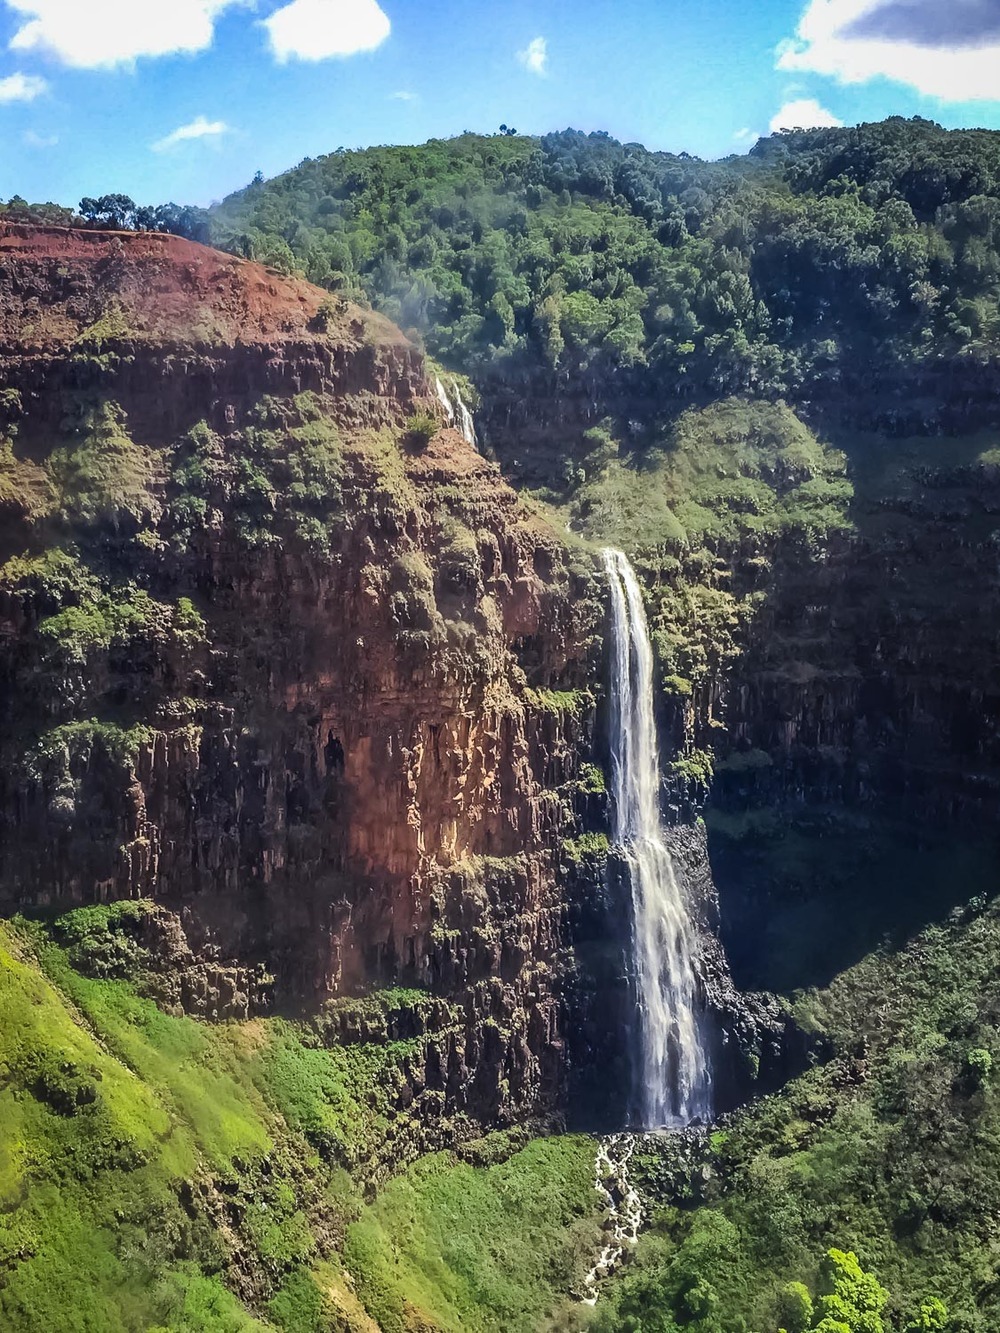 A beautiful view of a waterfall on Kauai's Na Pali Coast during our helicopter tour